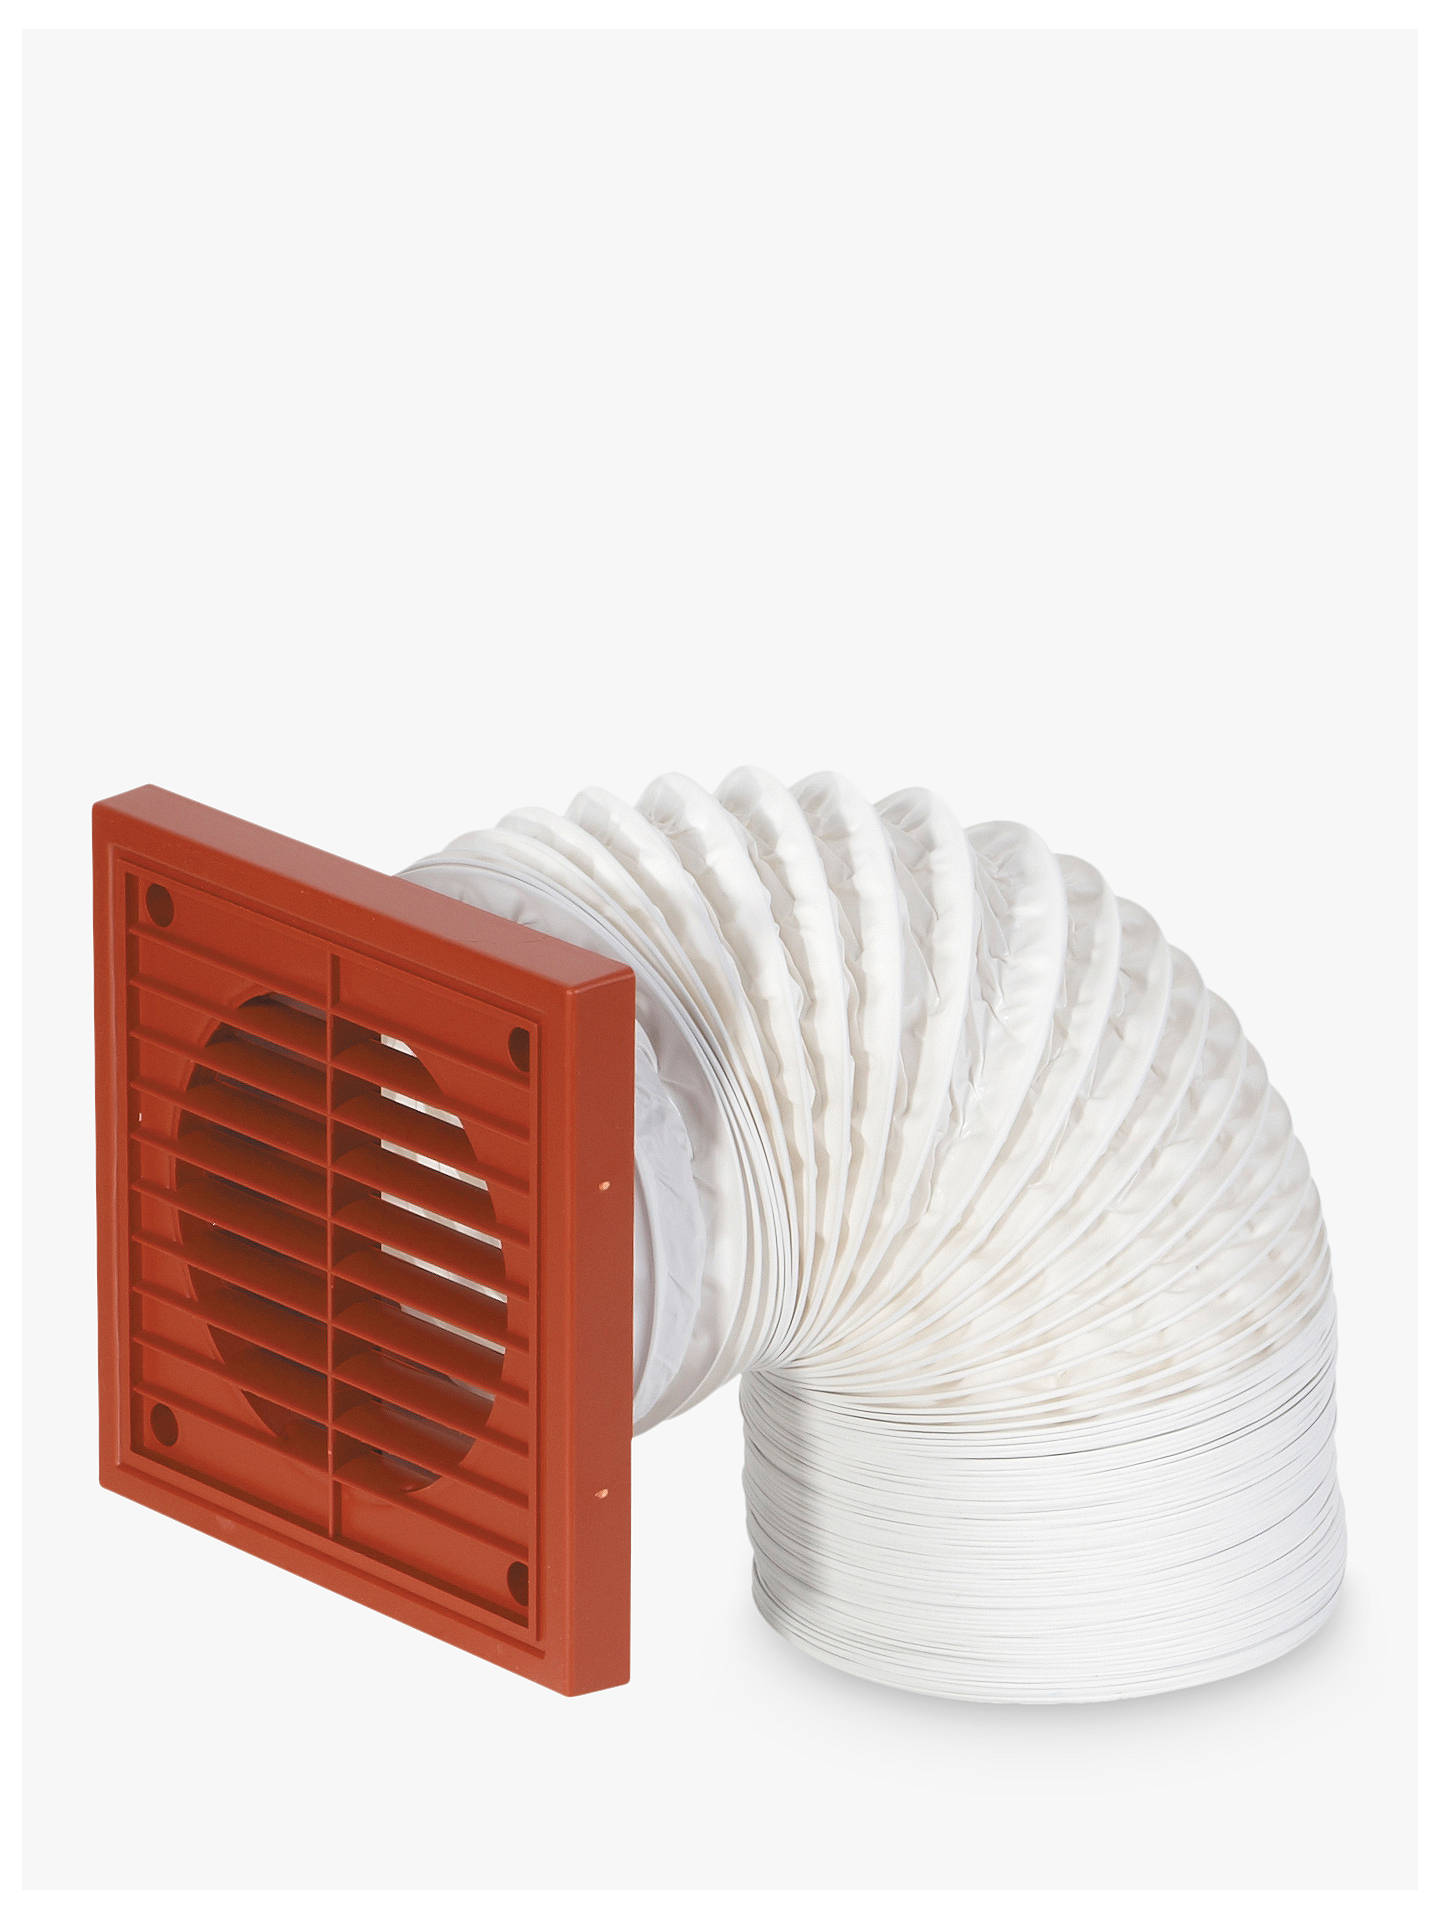 BuyJohn Lewis & Partners Venting Flexible Duct Kit, Terracotta Online at johnlewis.com